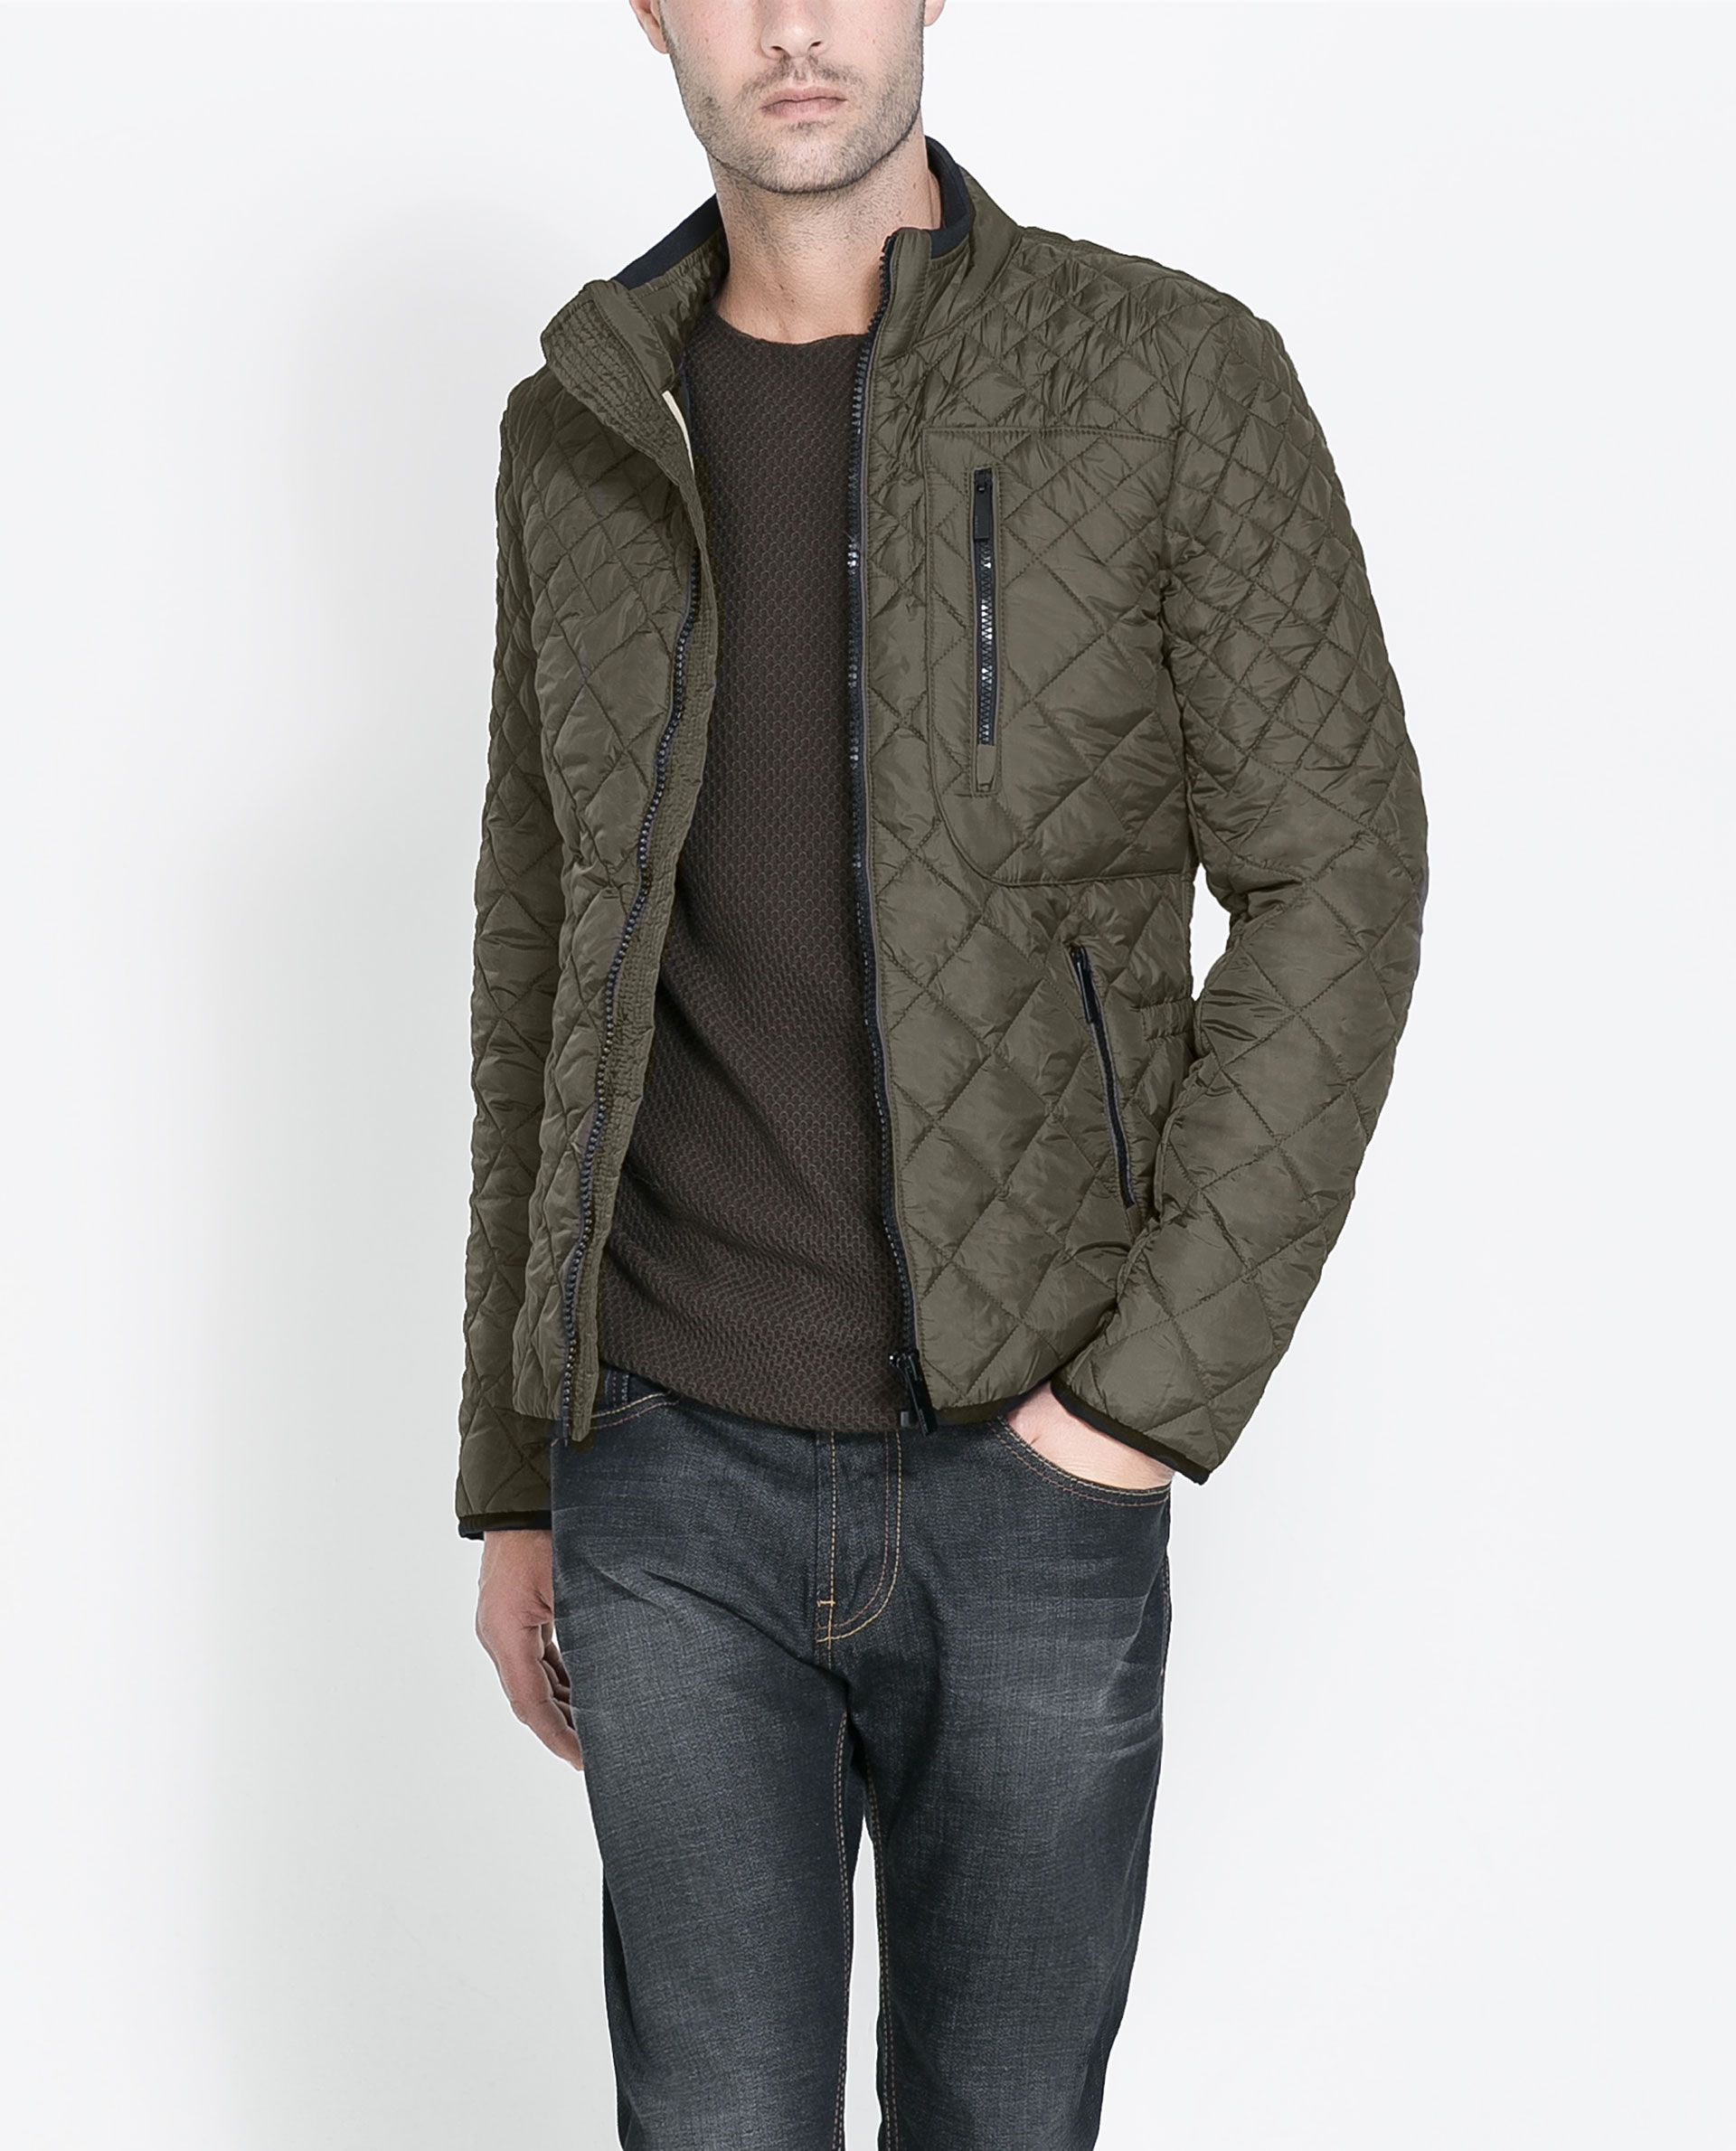 ZARA - MAN - QUILTED JACKET | Swagger | Pinterest | Zara man ...